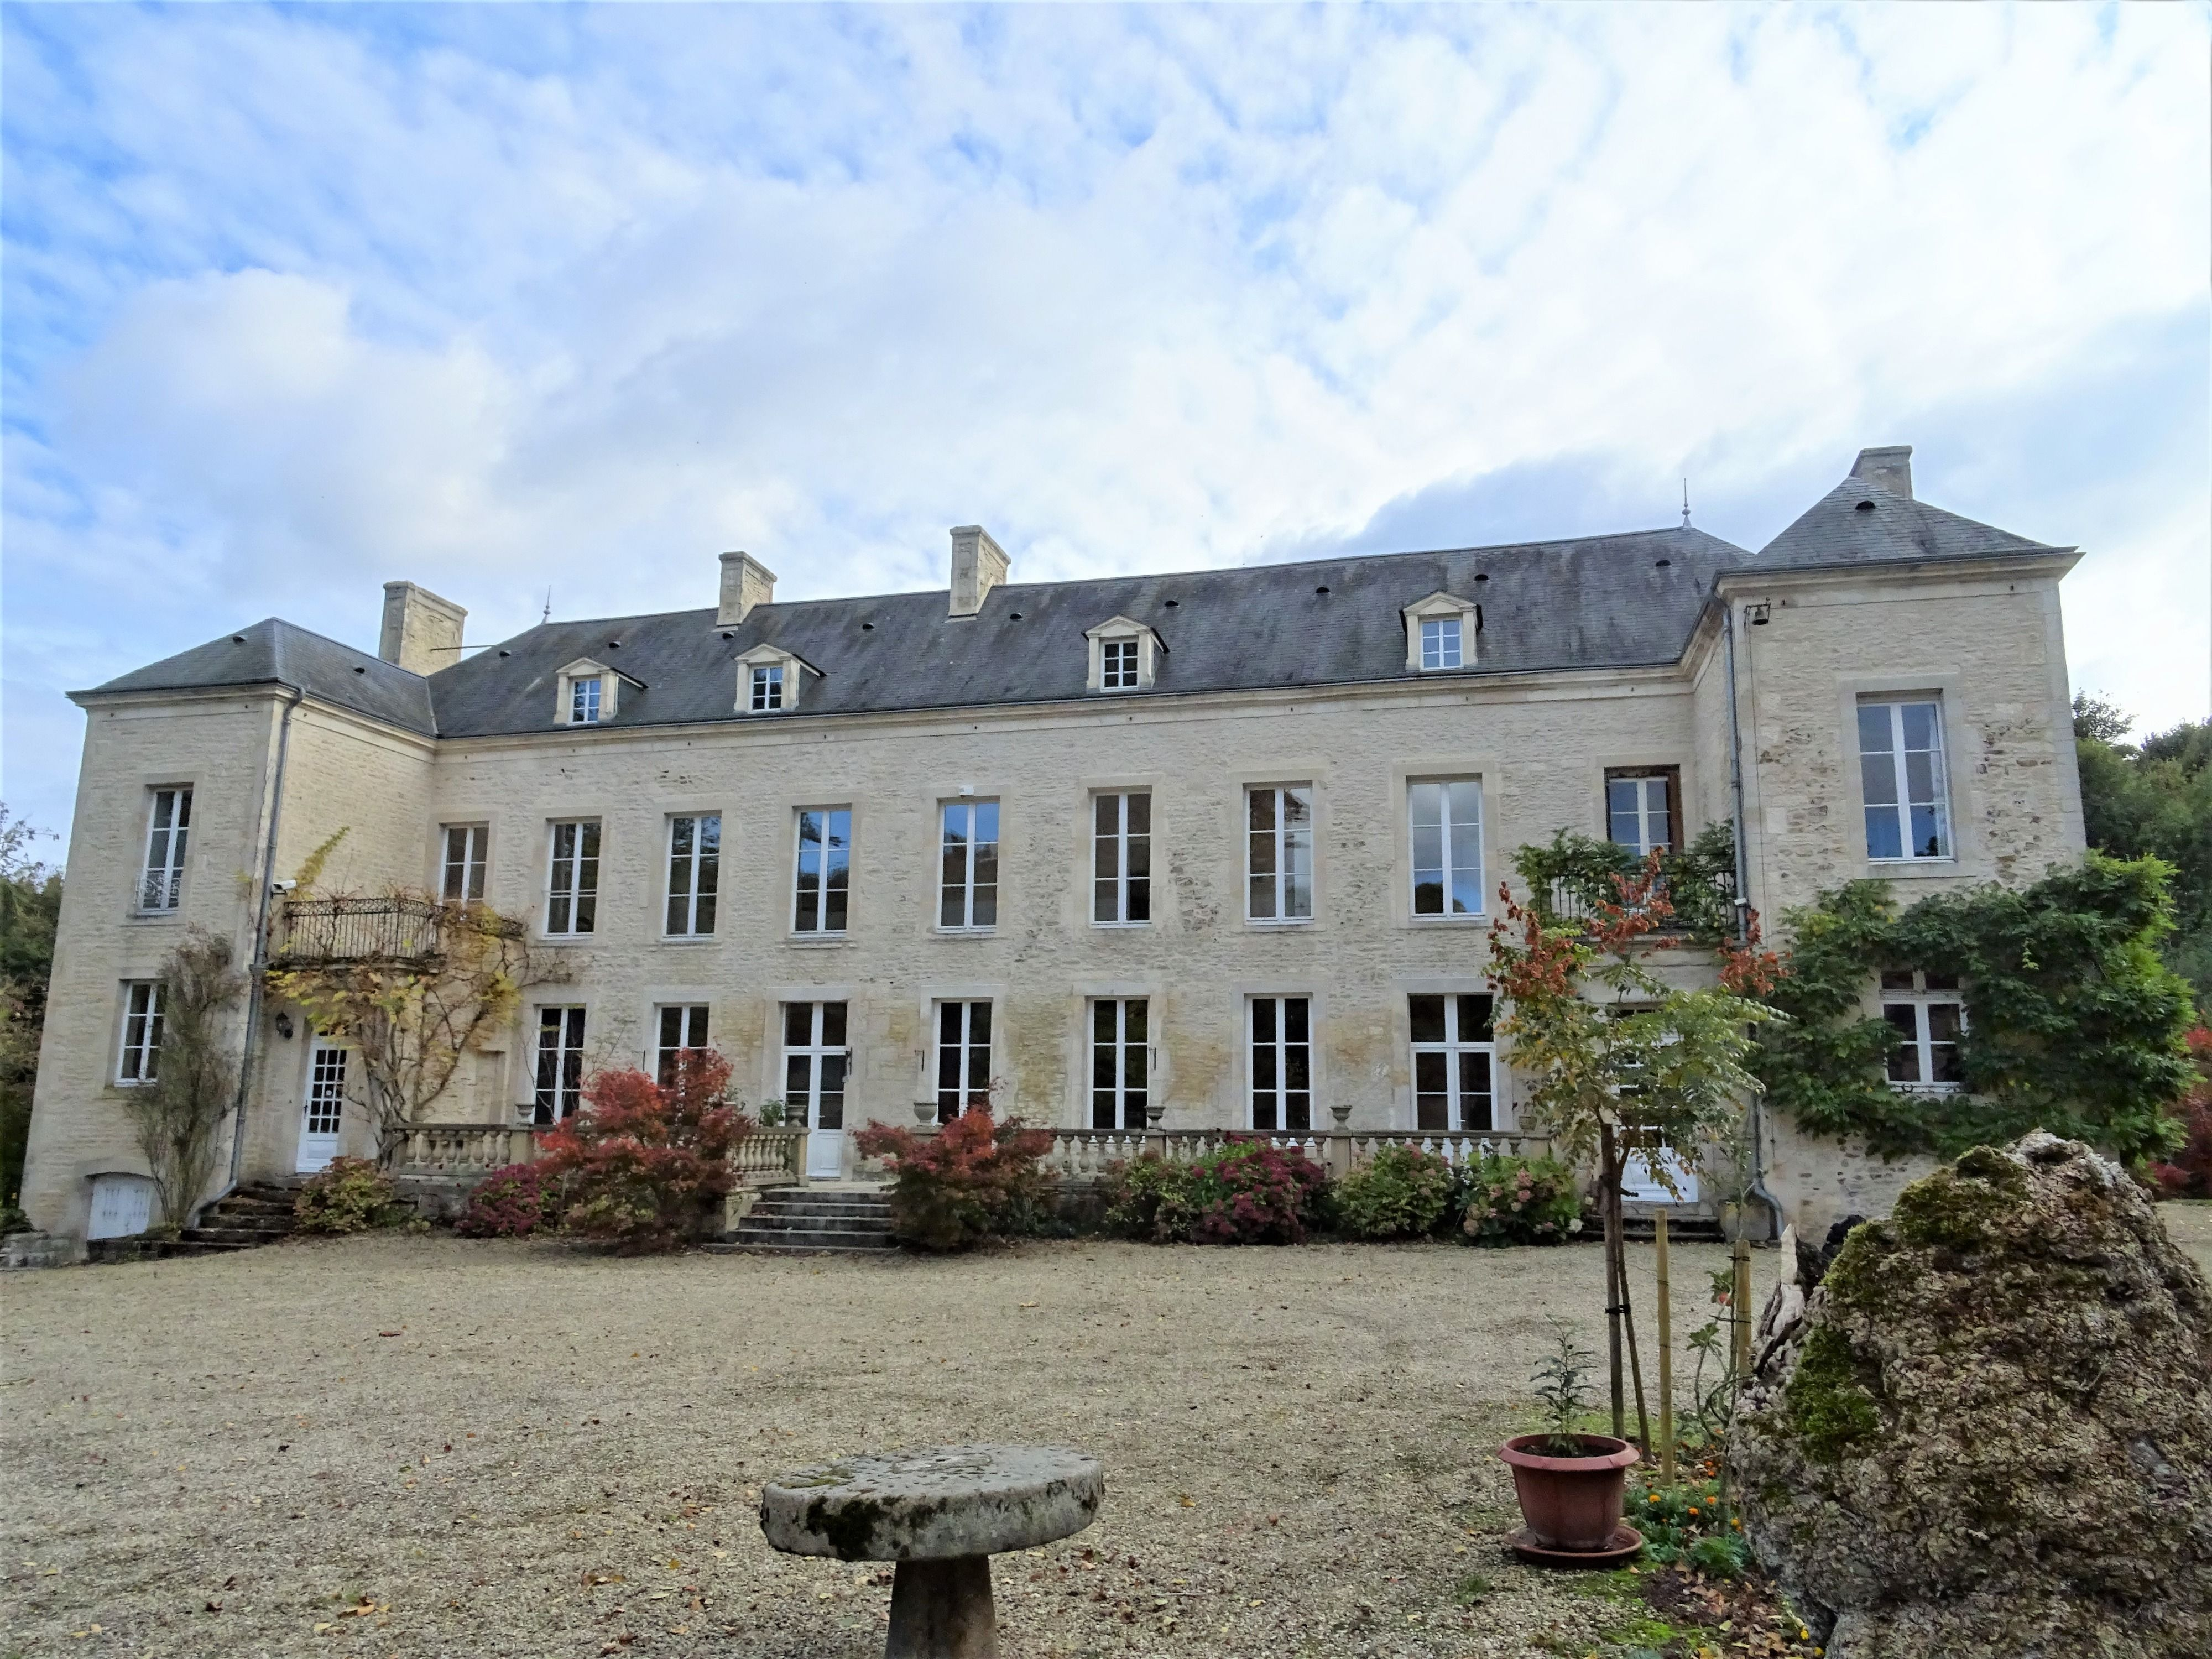 Fabulous Xix Century Manoir Set In Delightful Private Grounds Yet Just A Few Minutes Walk From The Centre Of Falaise Ch French Property Chateau Real Estate